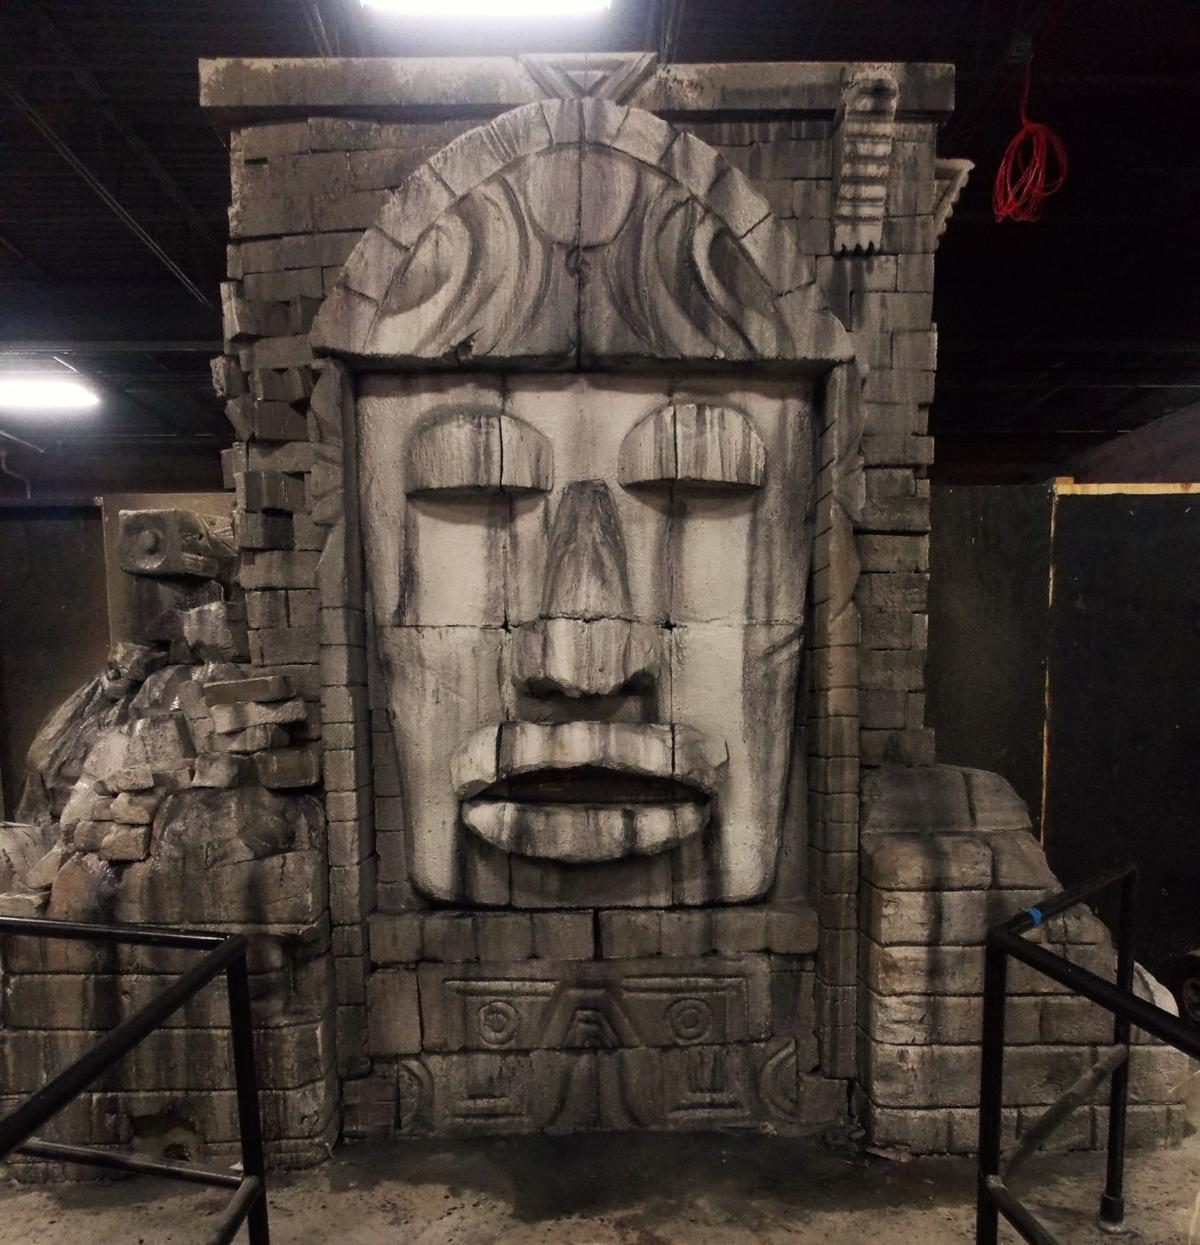 Crafter of creepy illusion: Ken Thompson of KStudios brings theaters, haunts to life